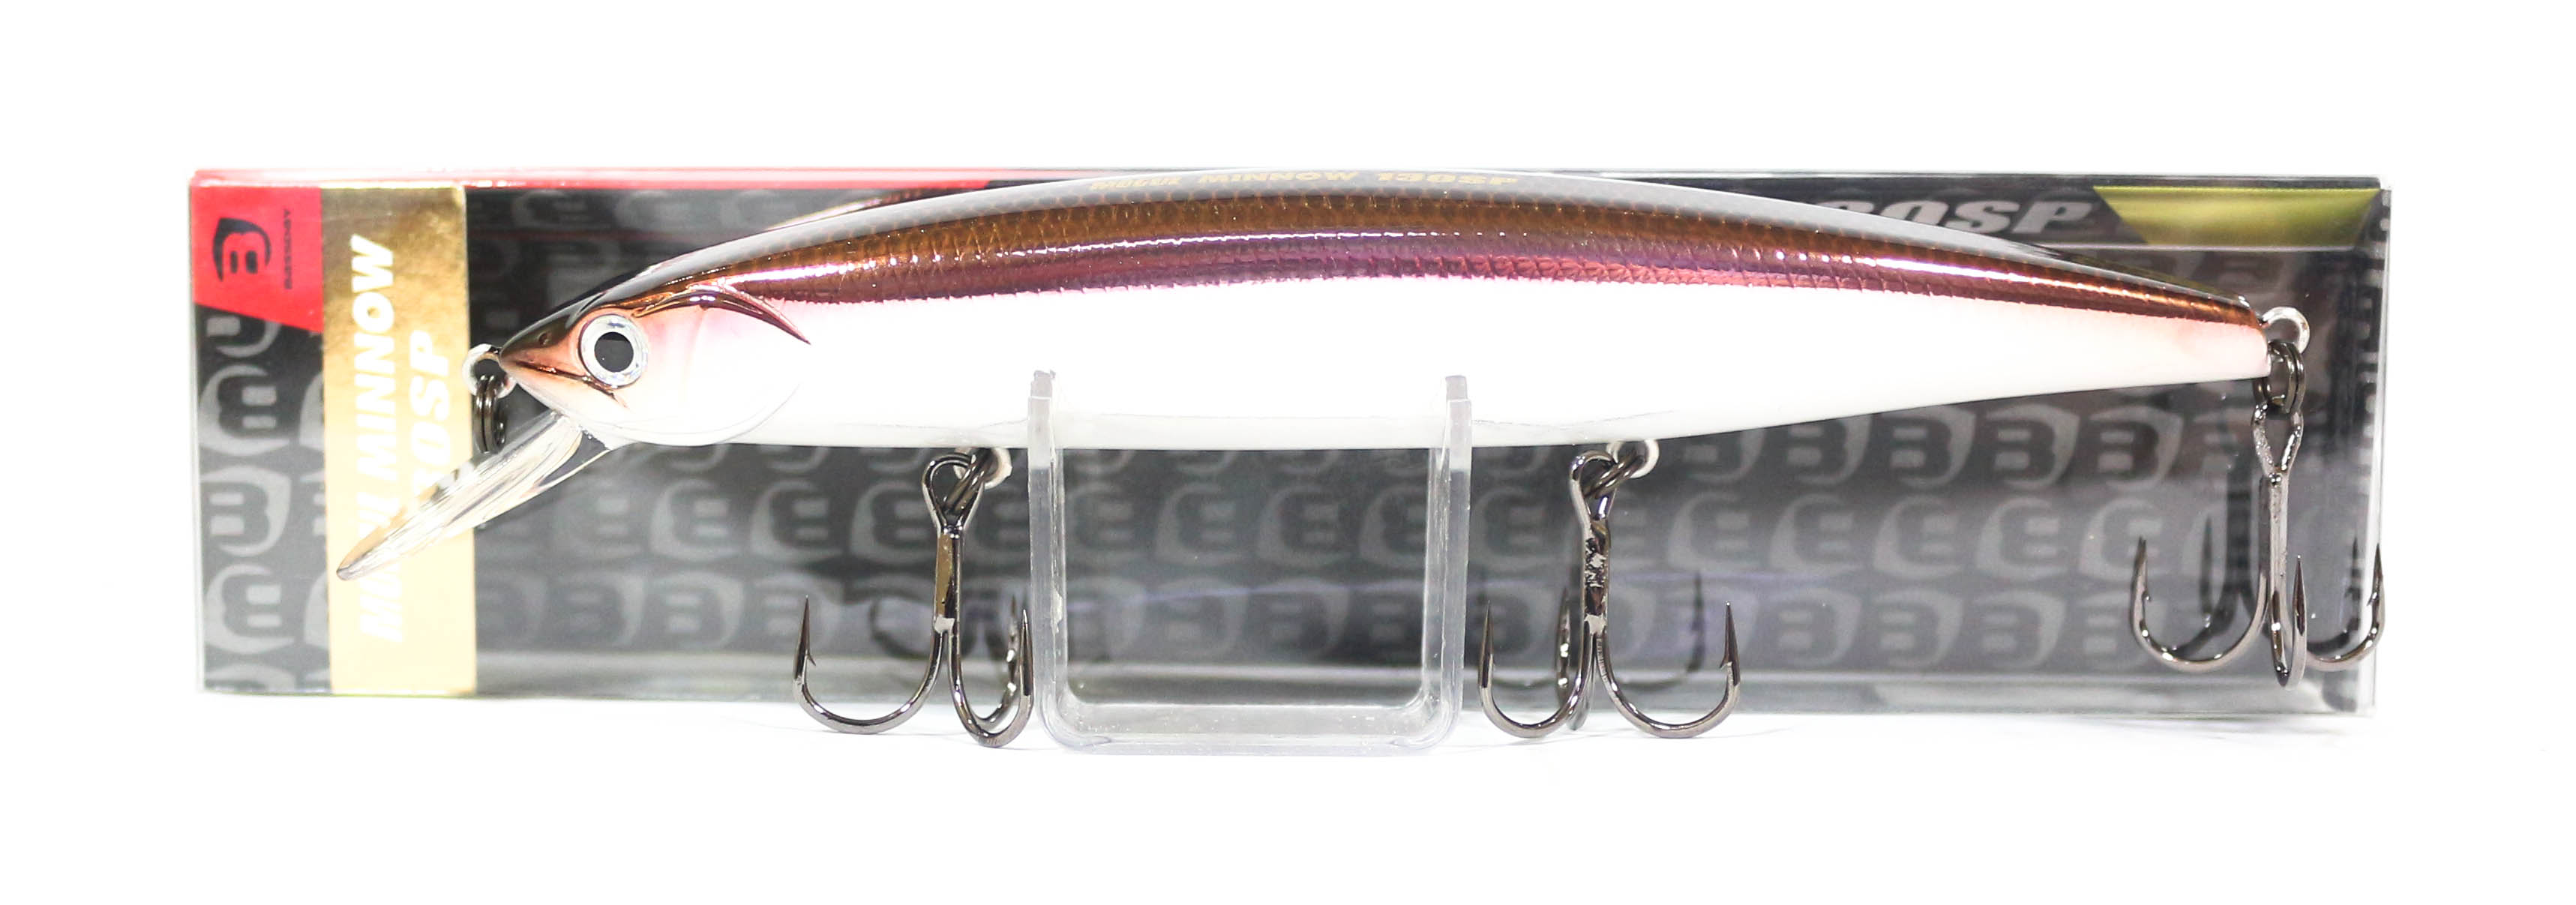 Bassday Mogul Minnow 130SP Suspend Lure 22.6 grams MH-03 (8050)